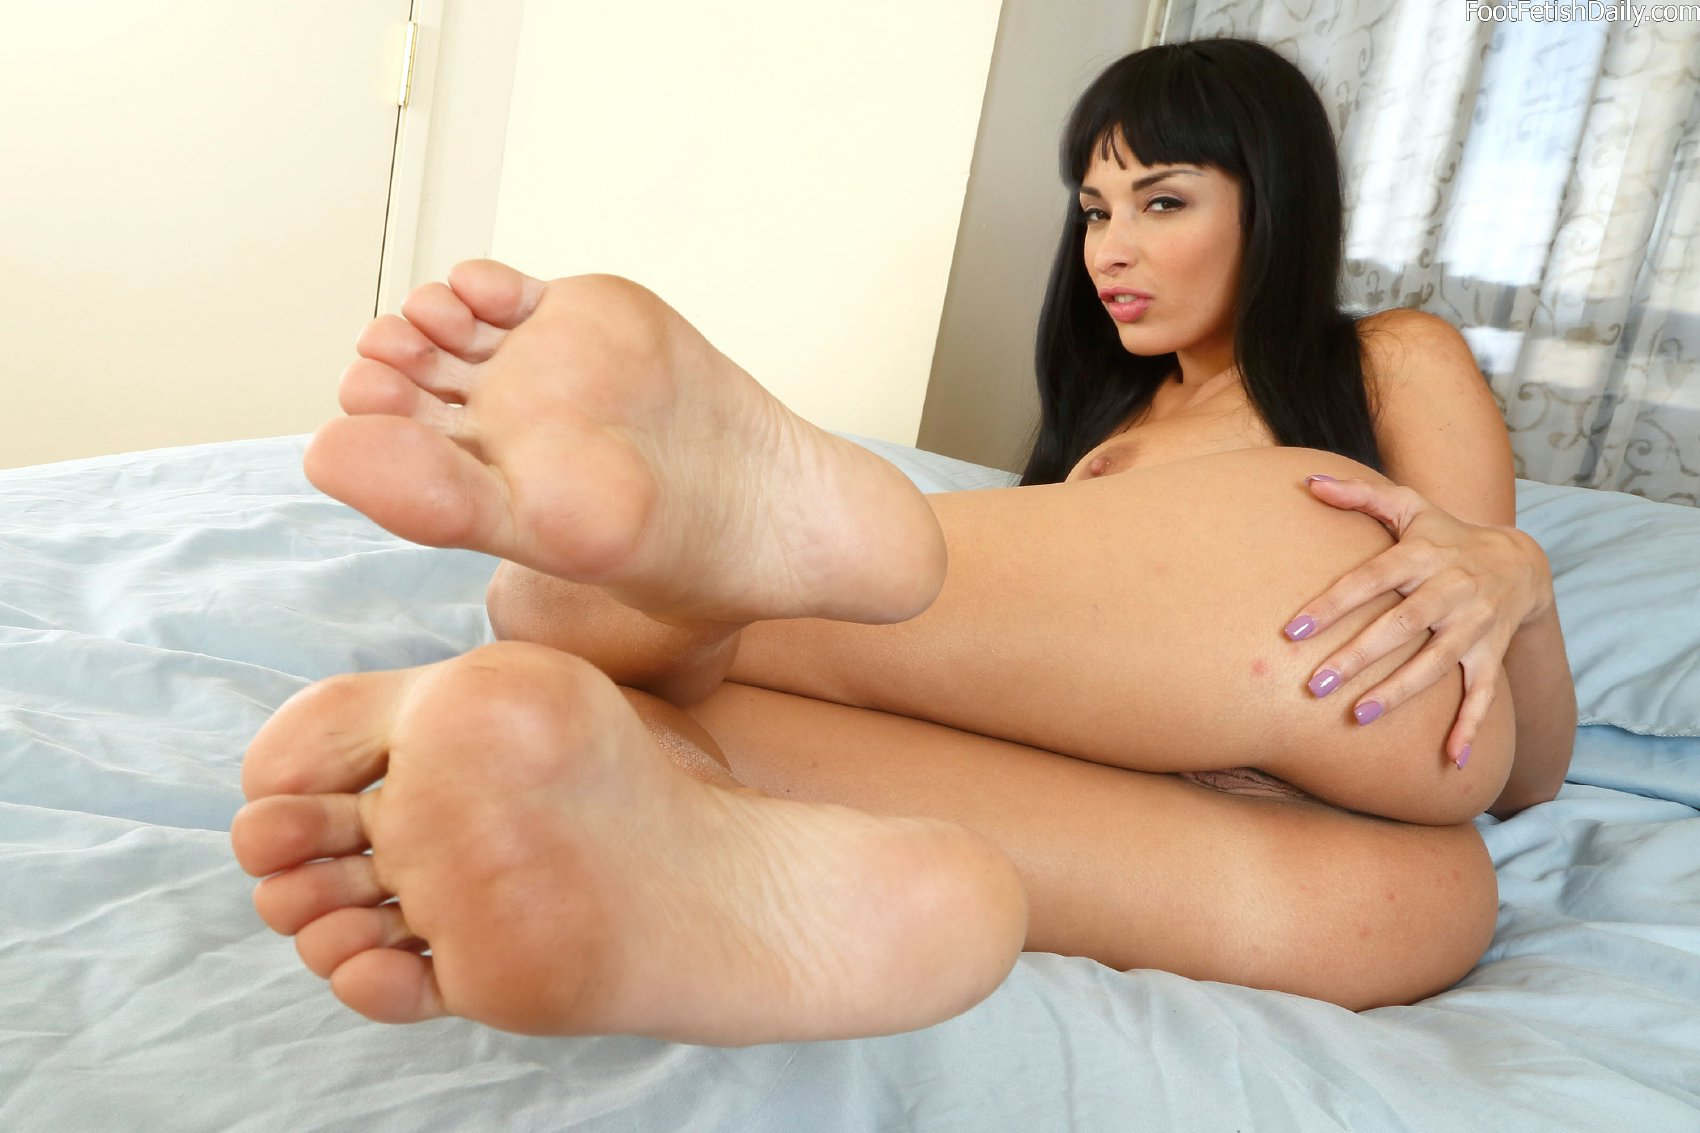 Anissa kate footjob